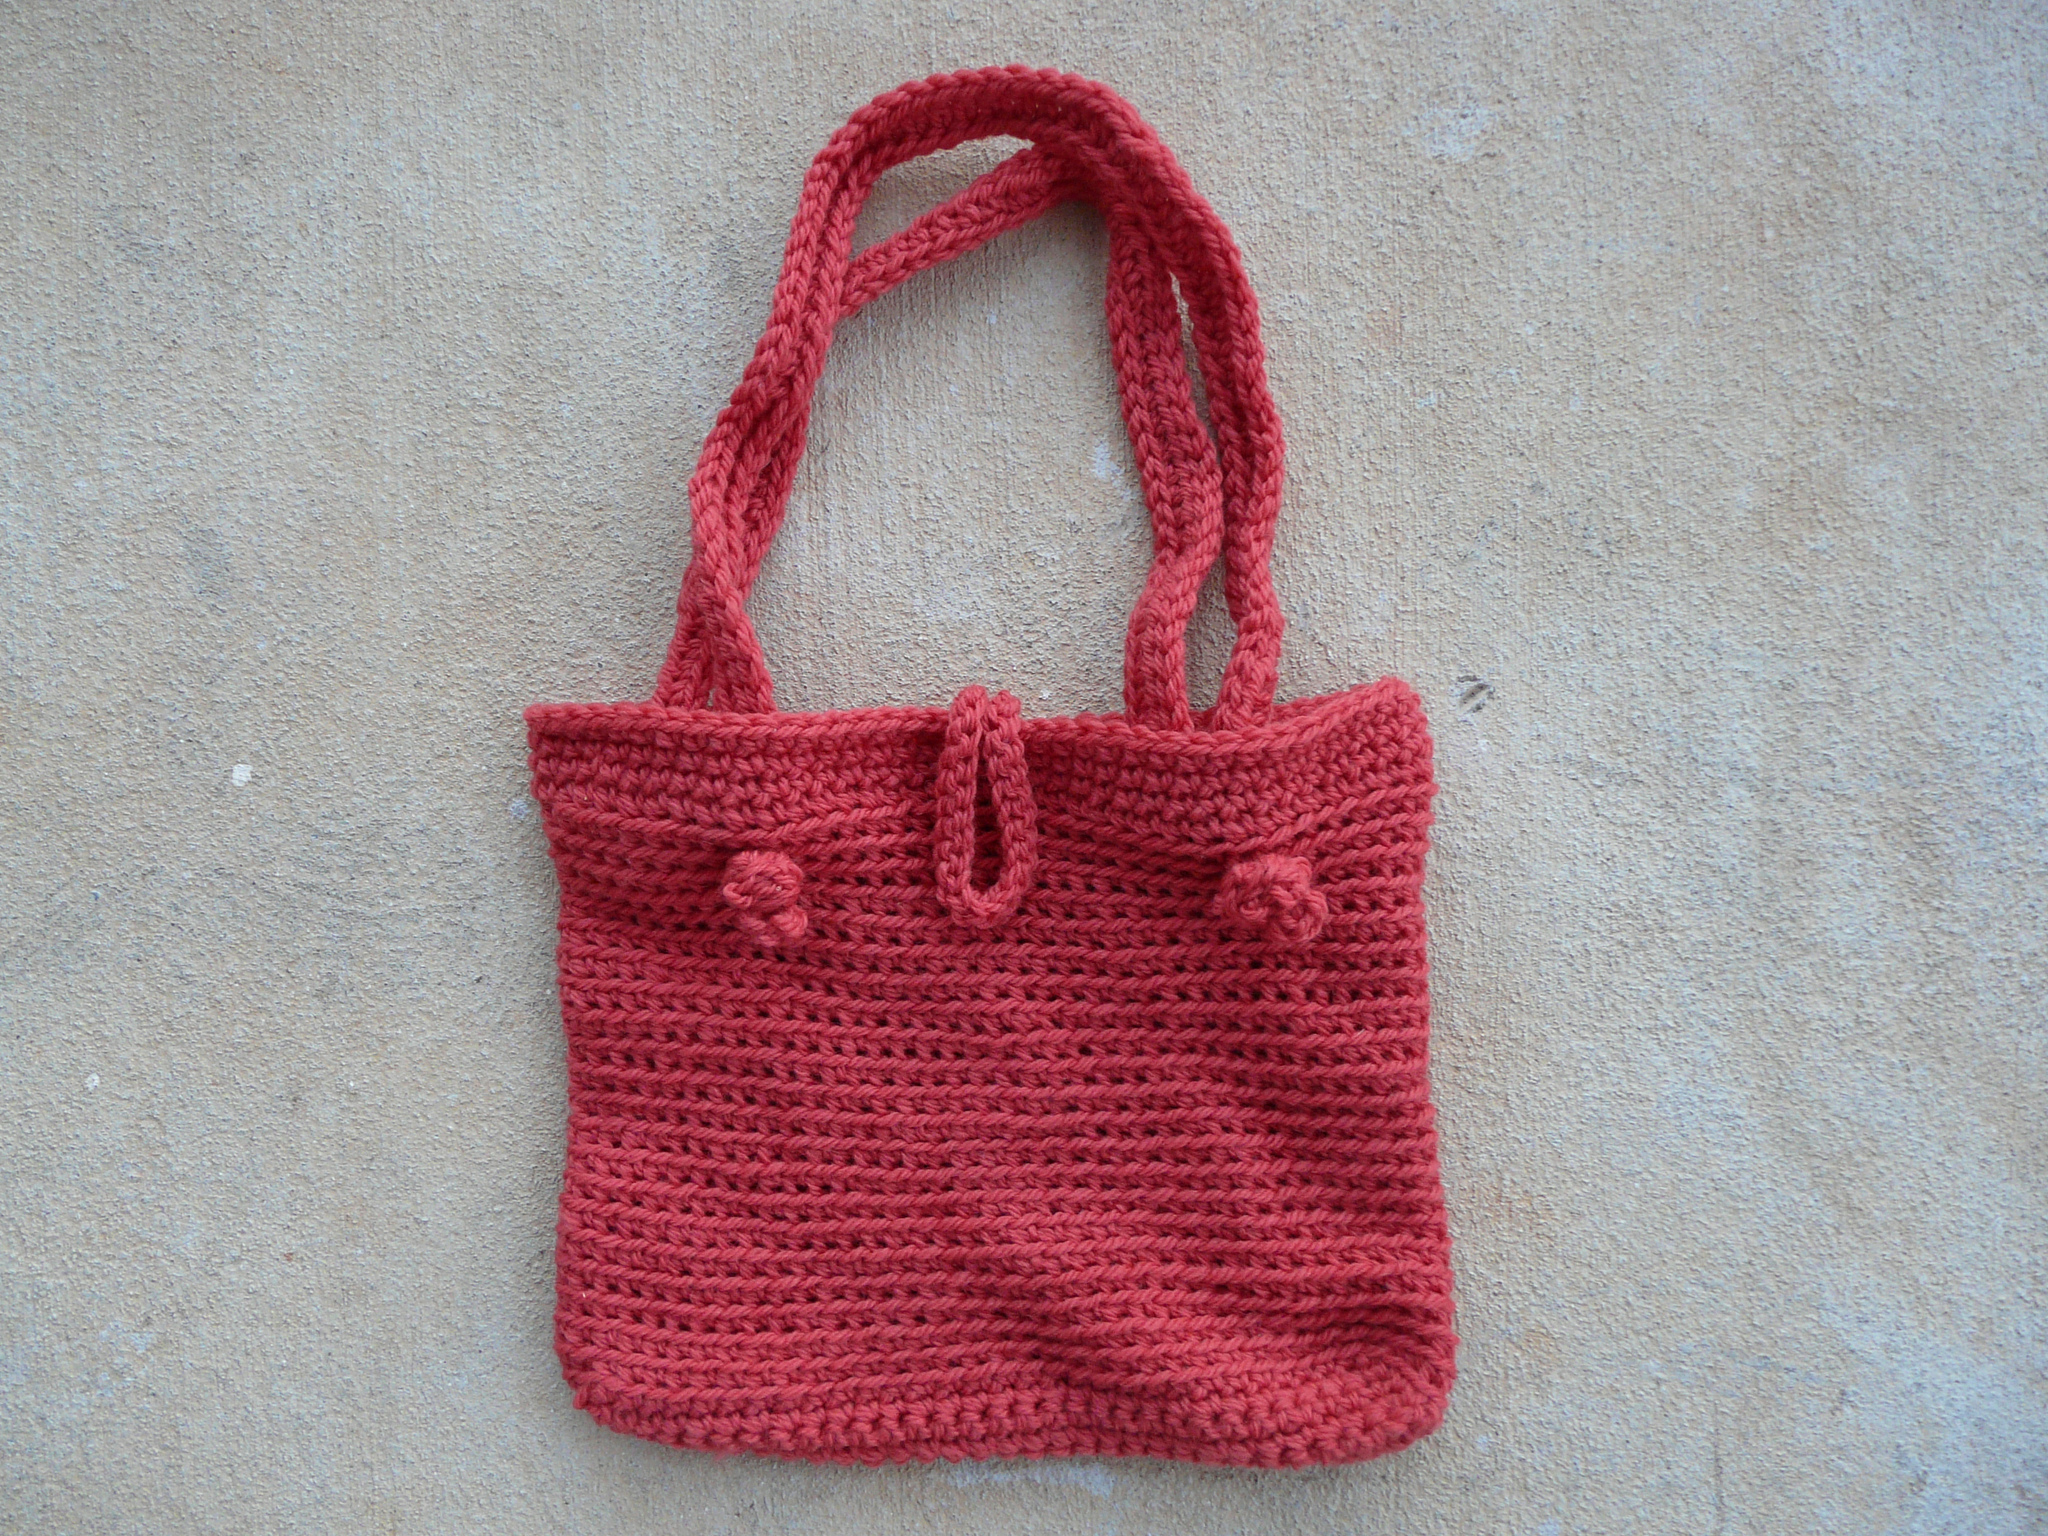 crochet purse ready to felt